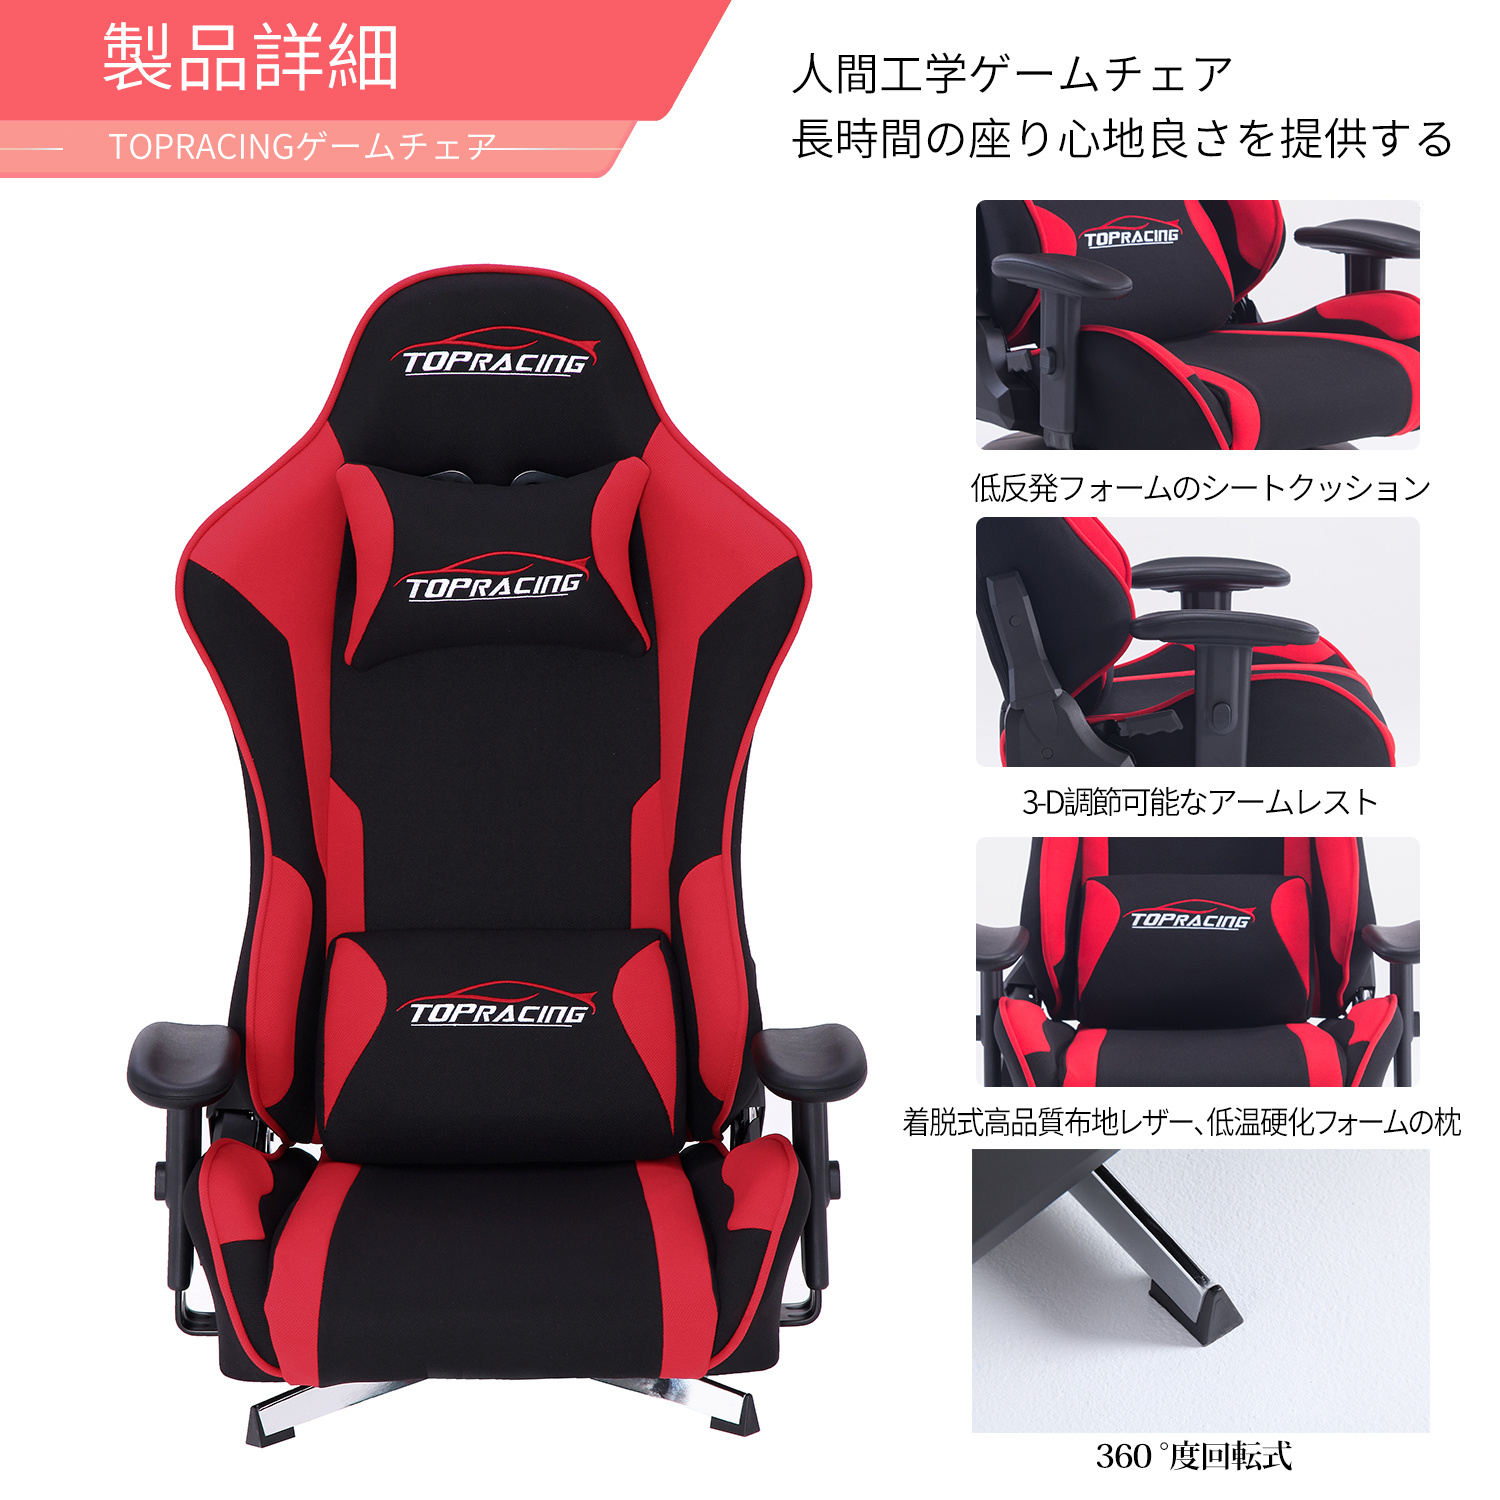 Round Base Gaming Chair Computer, Round Base Gaming Chair